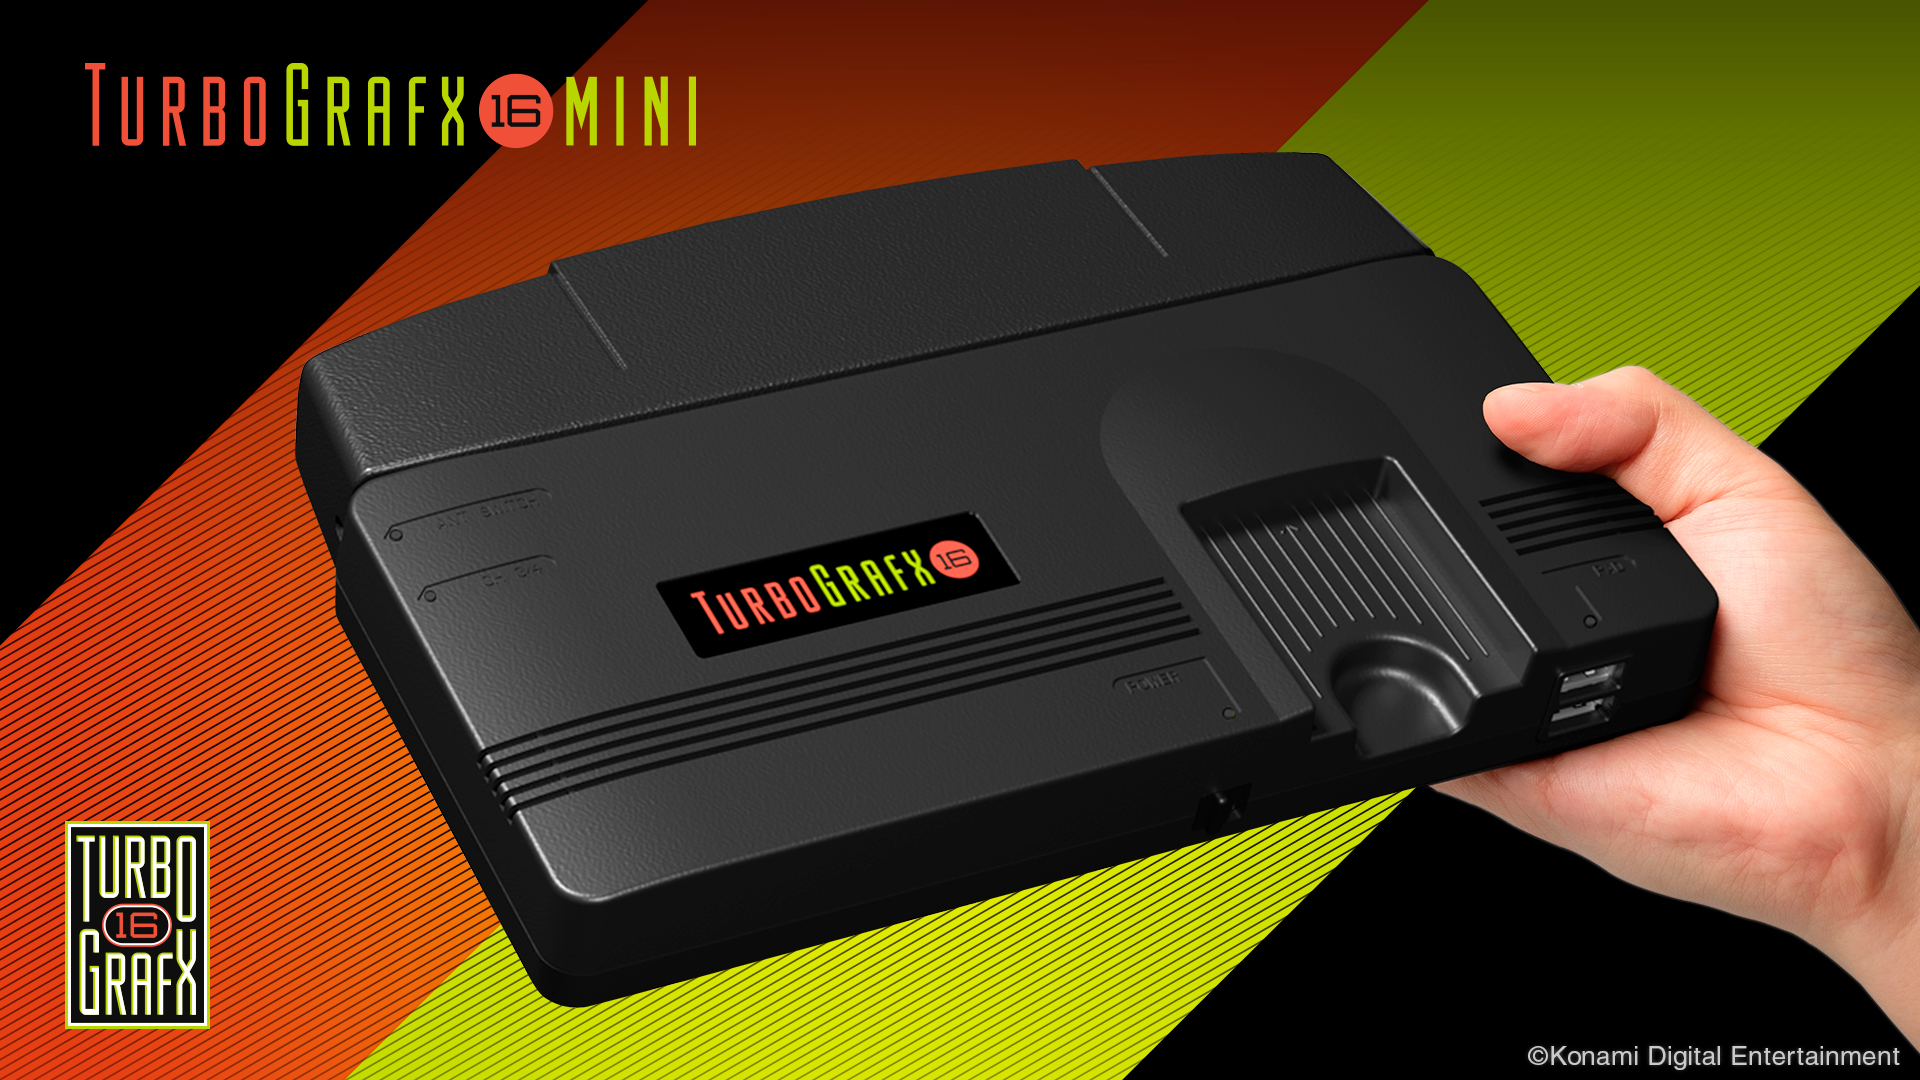 Konami have announced further details of their PC Engine